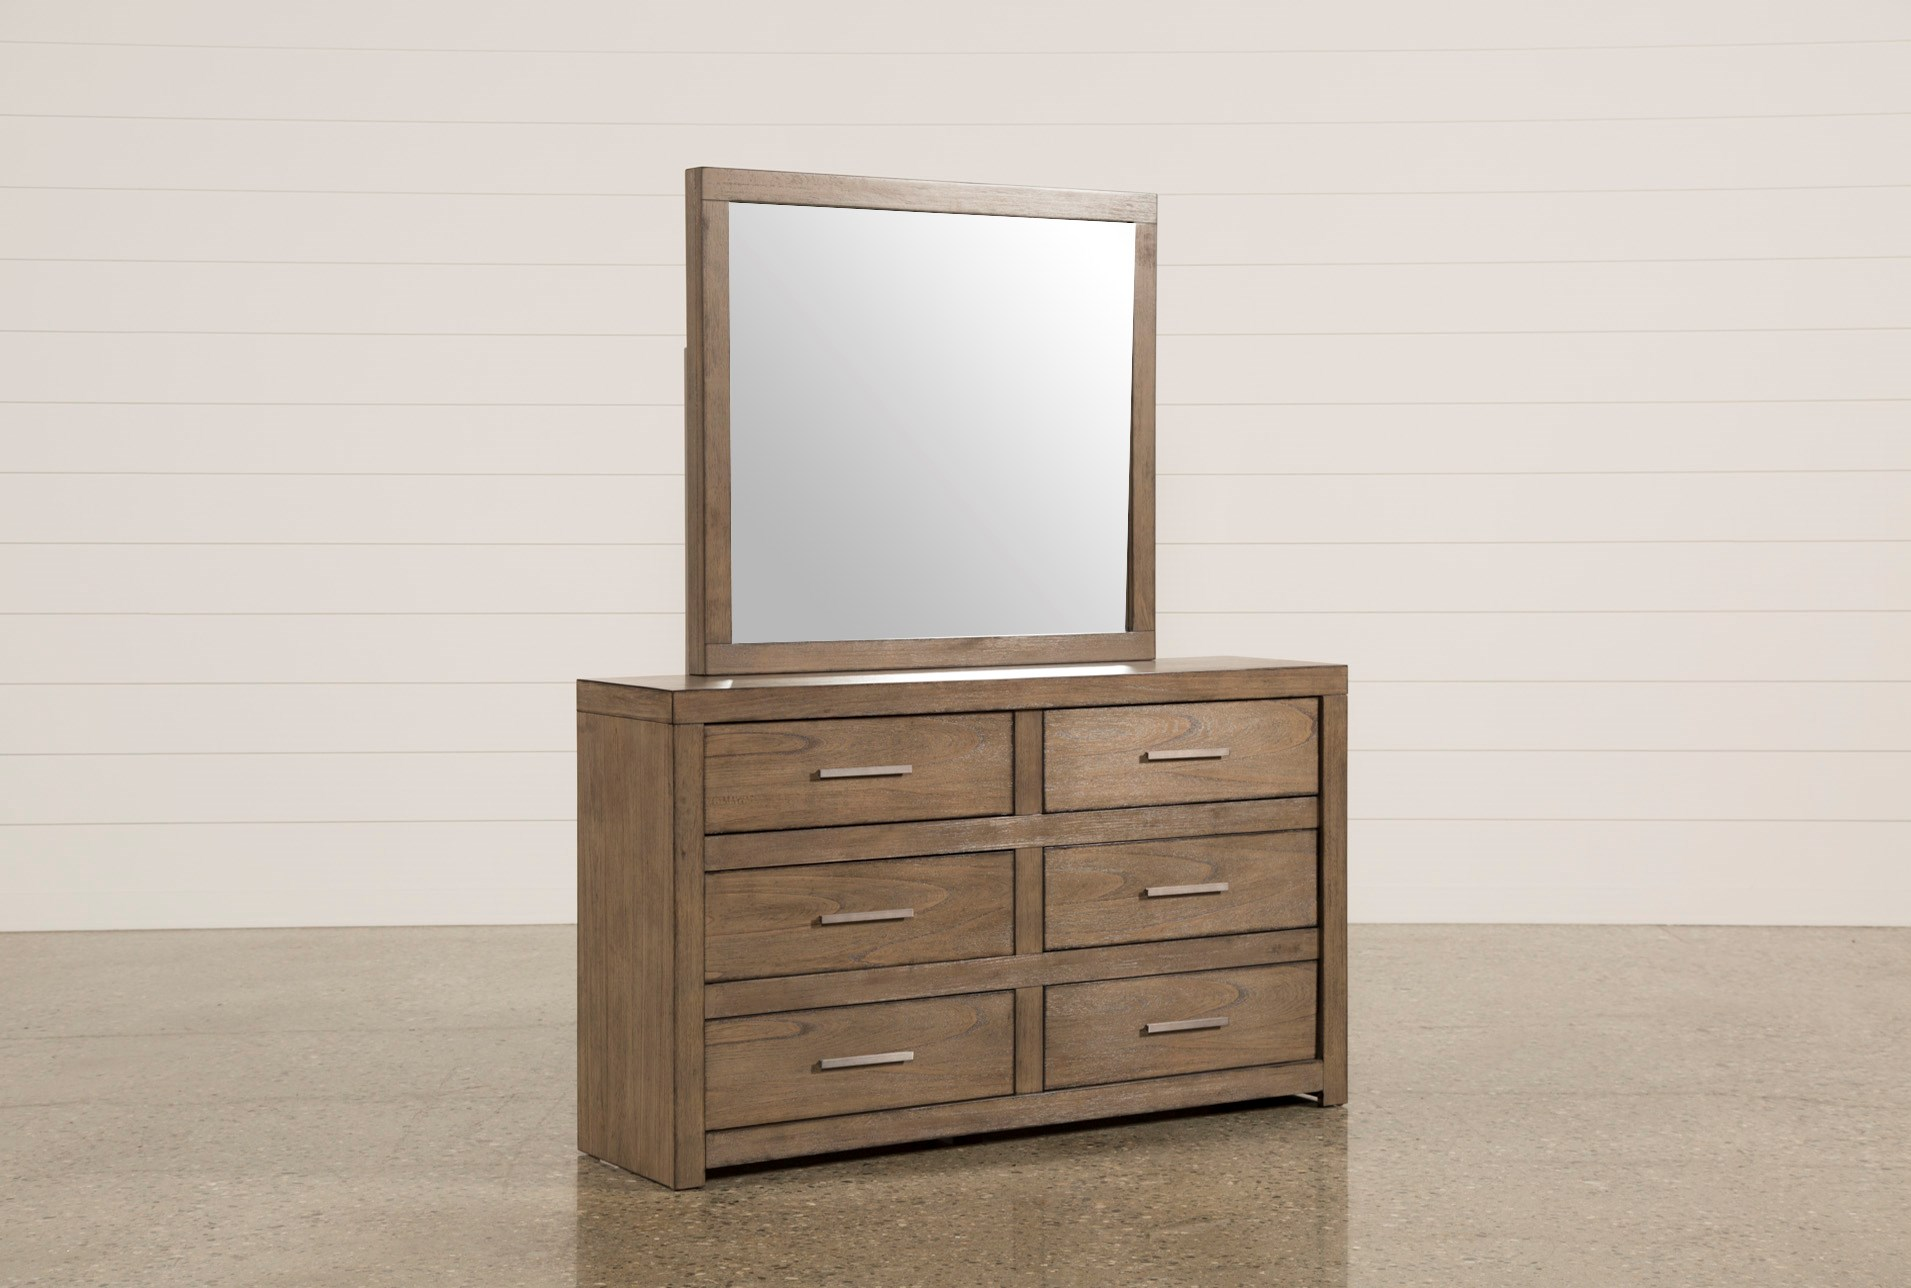 Riley greystone dresser mirror qty 1 has been successfully added to your cart